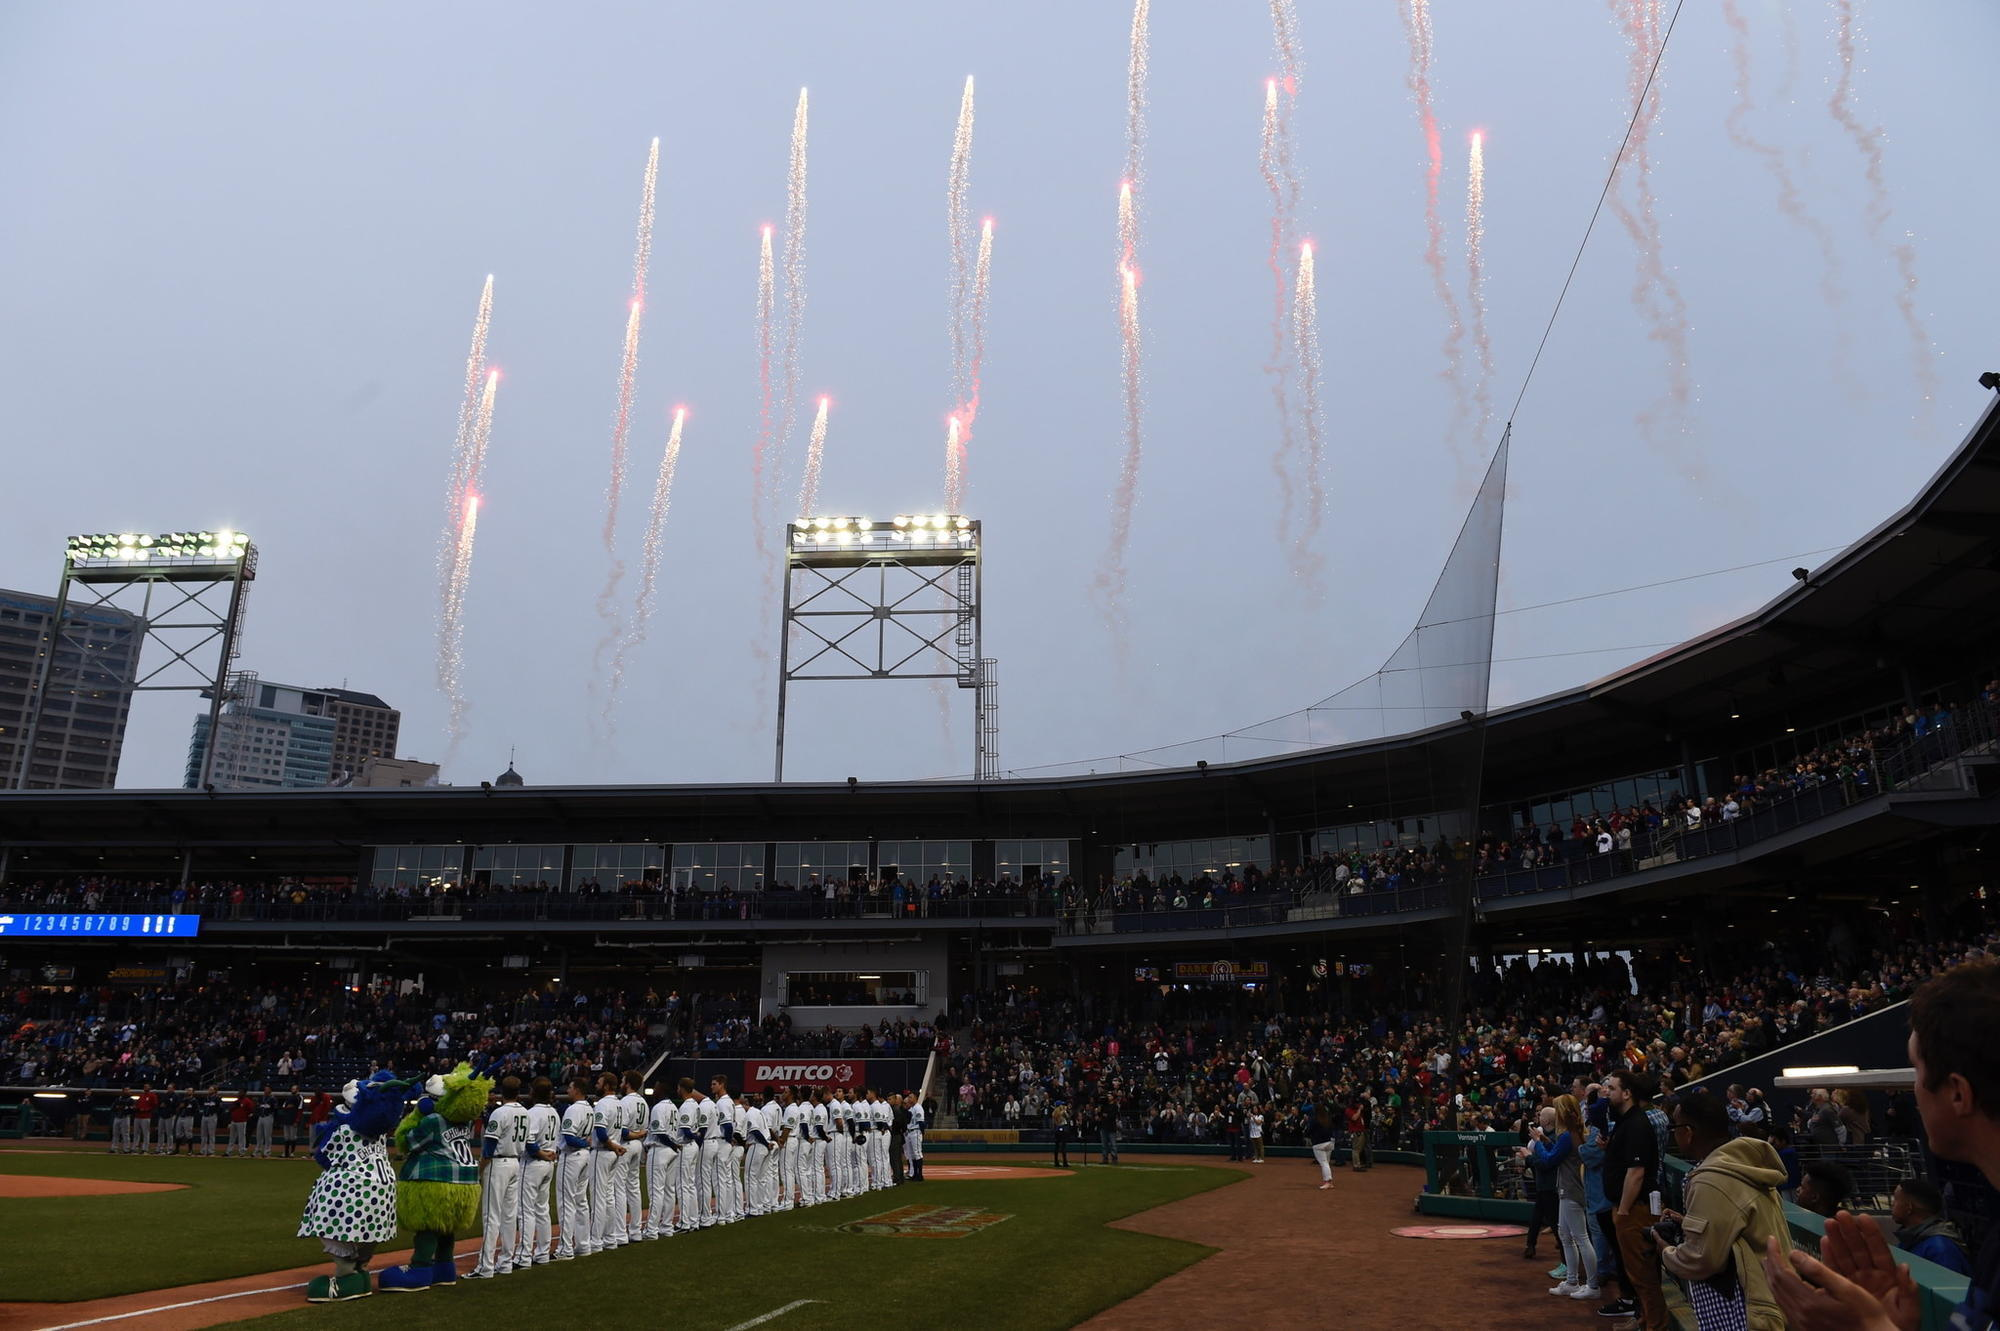 Rockies Yard Goats Extend Agreement Through 2020